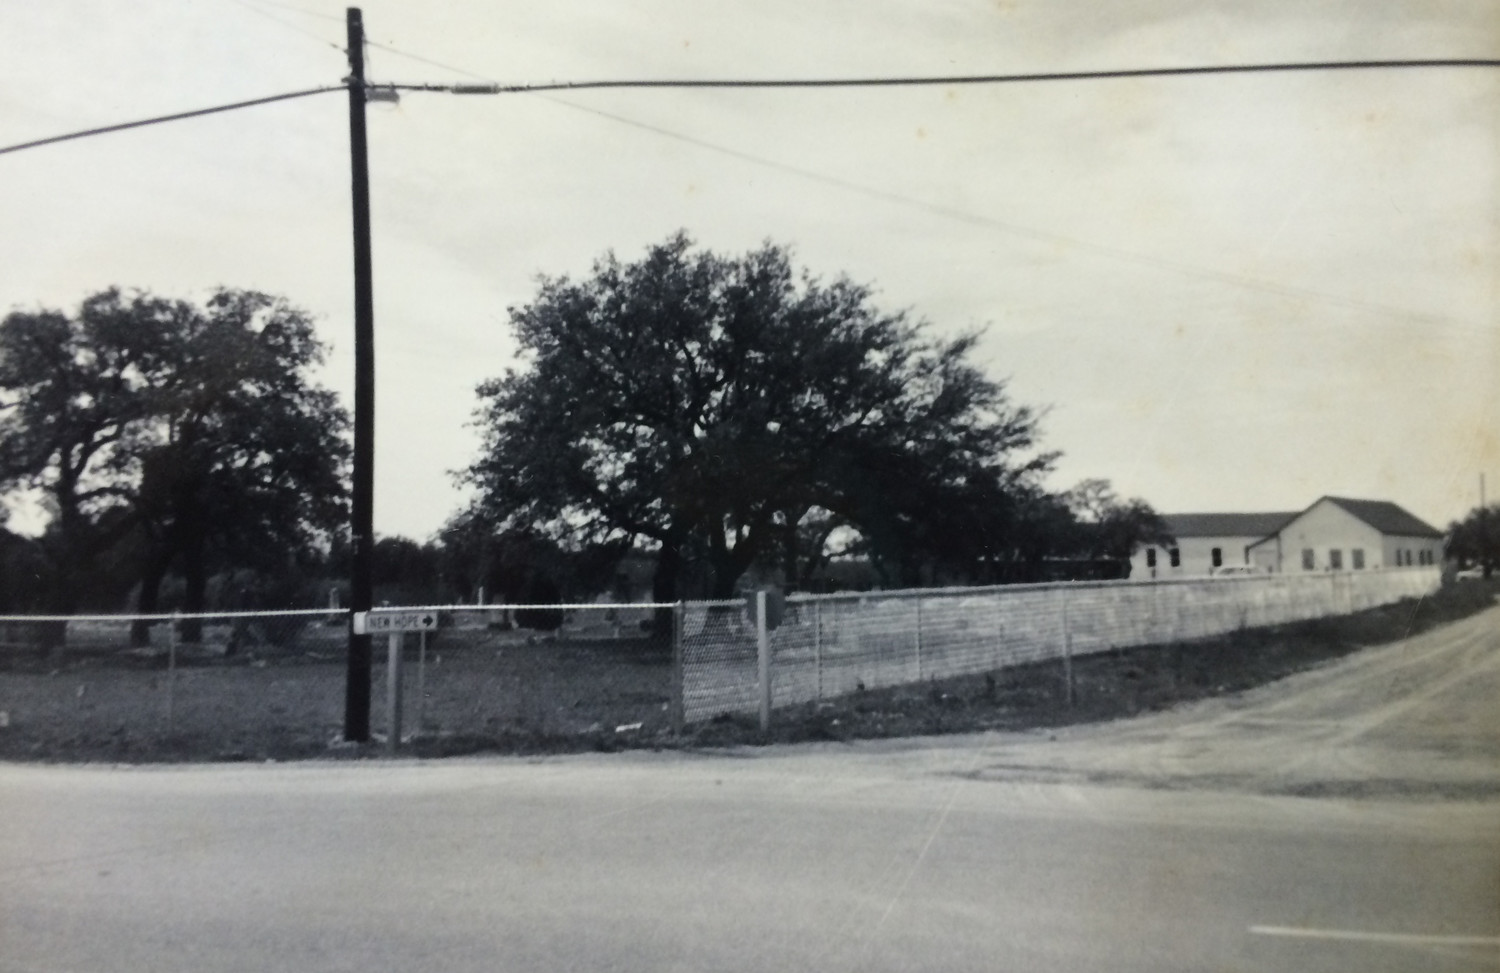 New Hope Church, at the corner of New Hope Drive and U.S. 183, in the 1950s.